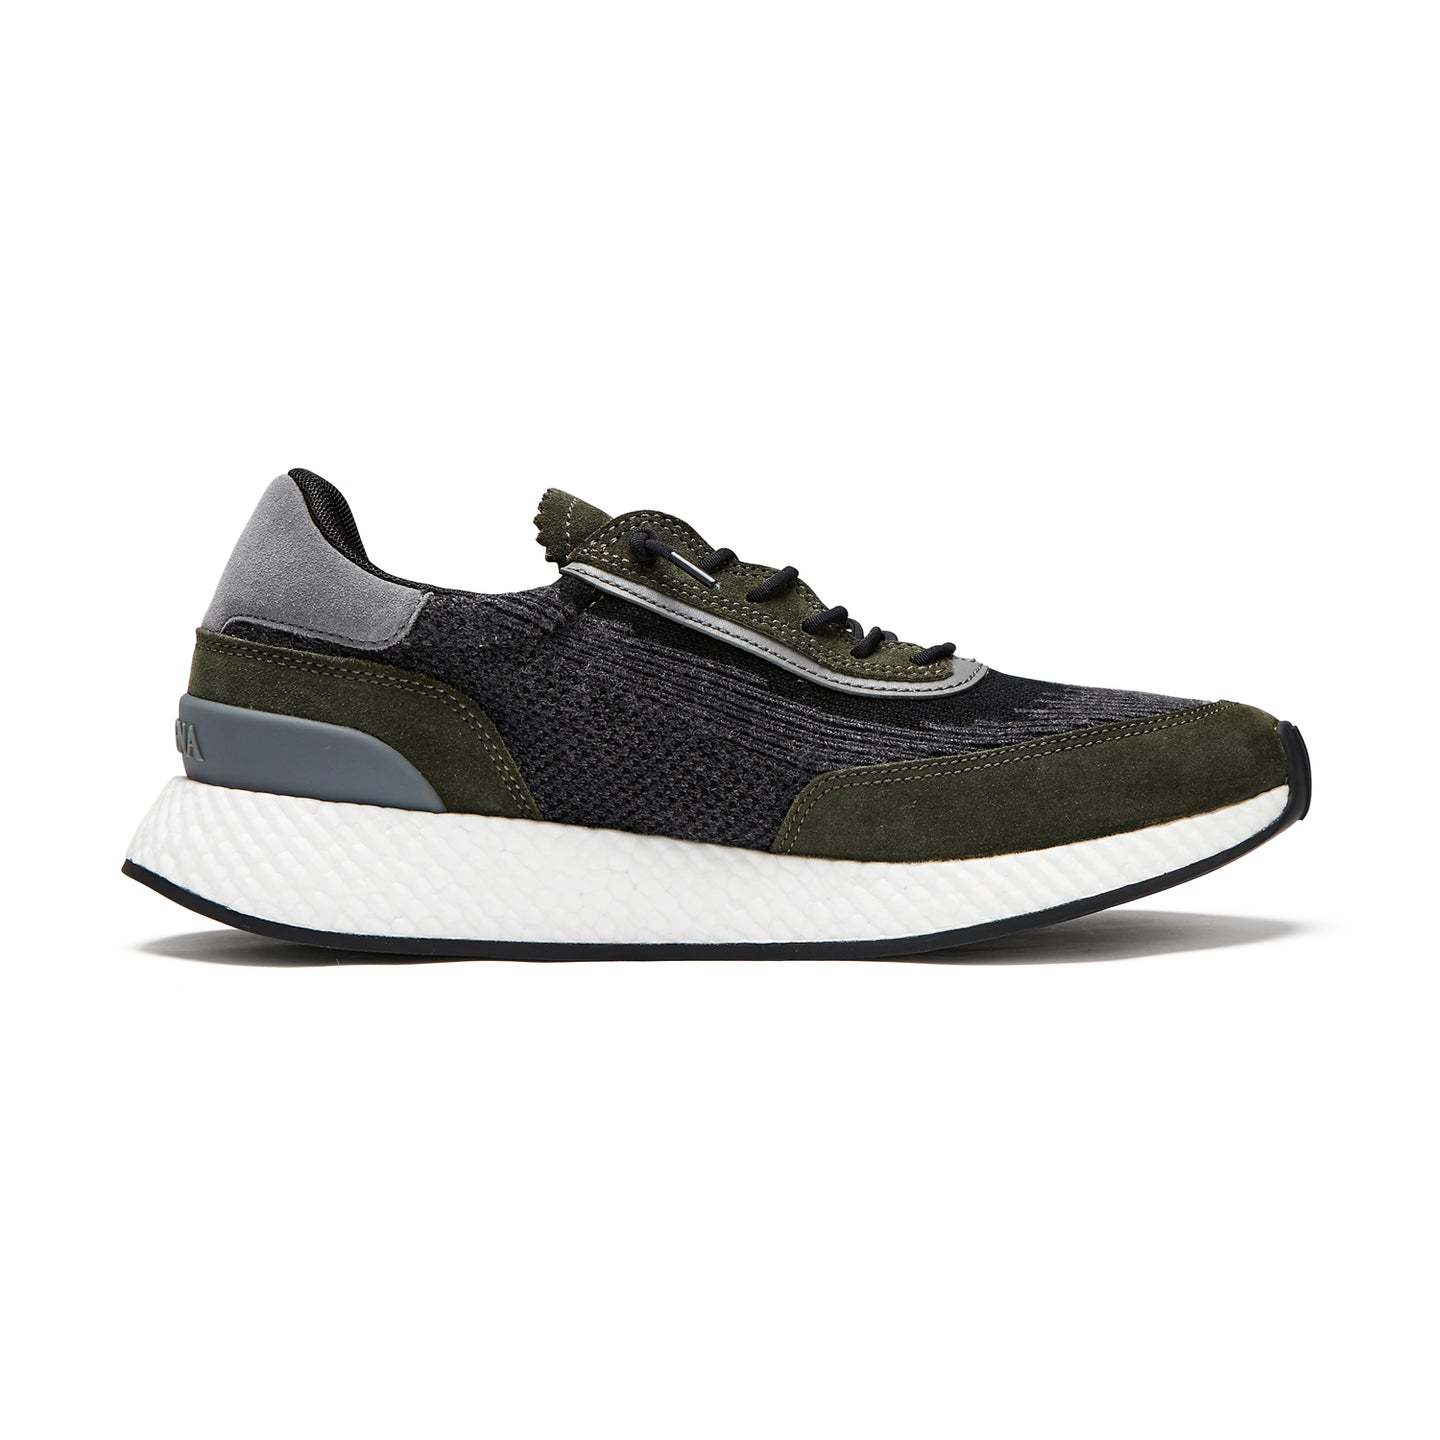 Z Zegna Techmerino™ Piuma Suede Sneakers (Grey / Green) - Union 22